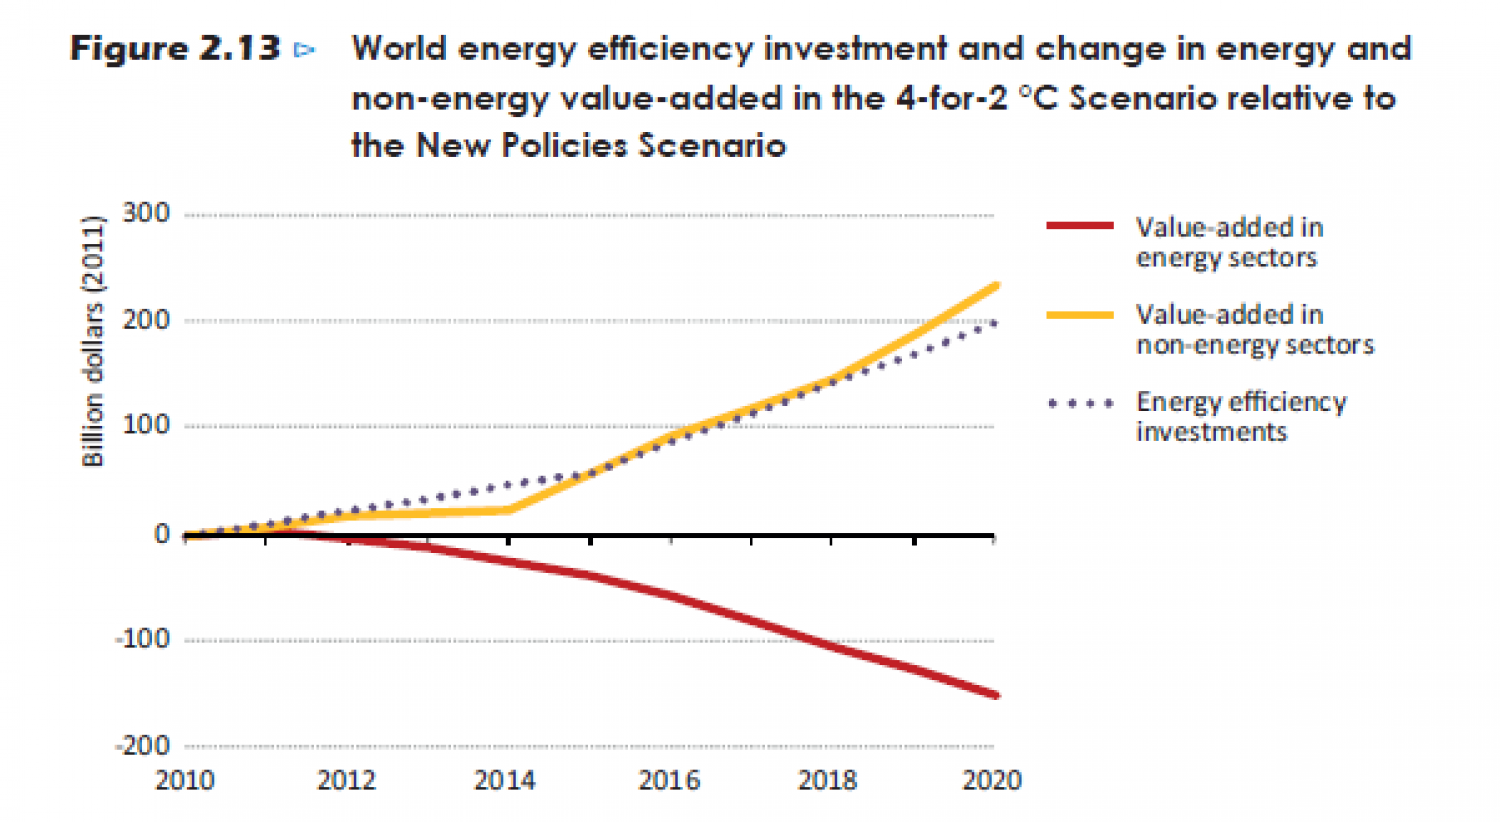 World energy efficiency investment and change in energy and non-energy value-added in the 4-for-2 °C Scenario relative to the New Policies Scenario Infographic